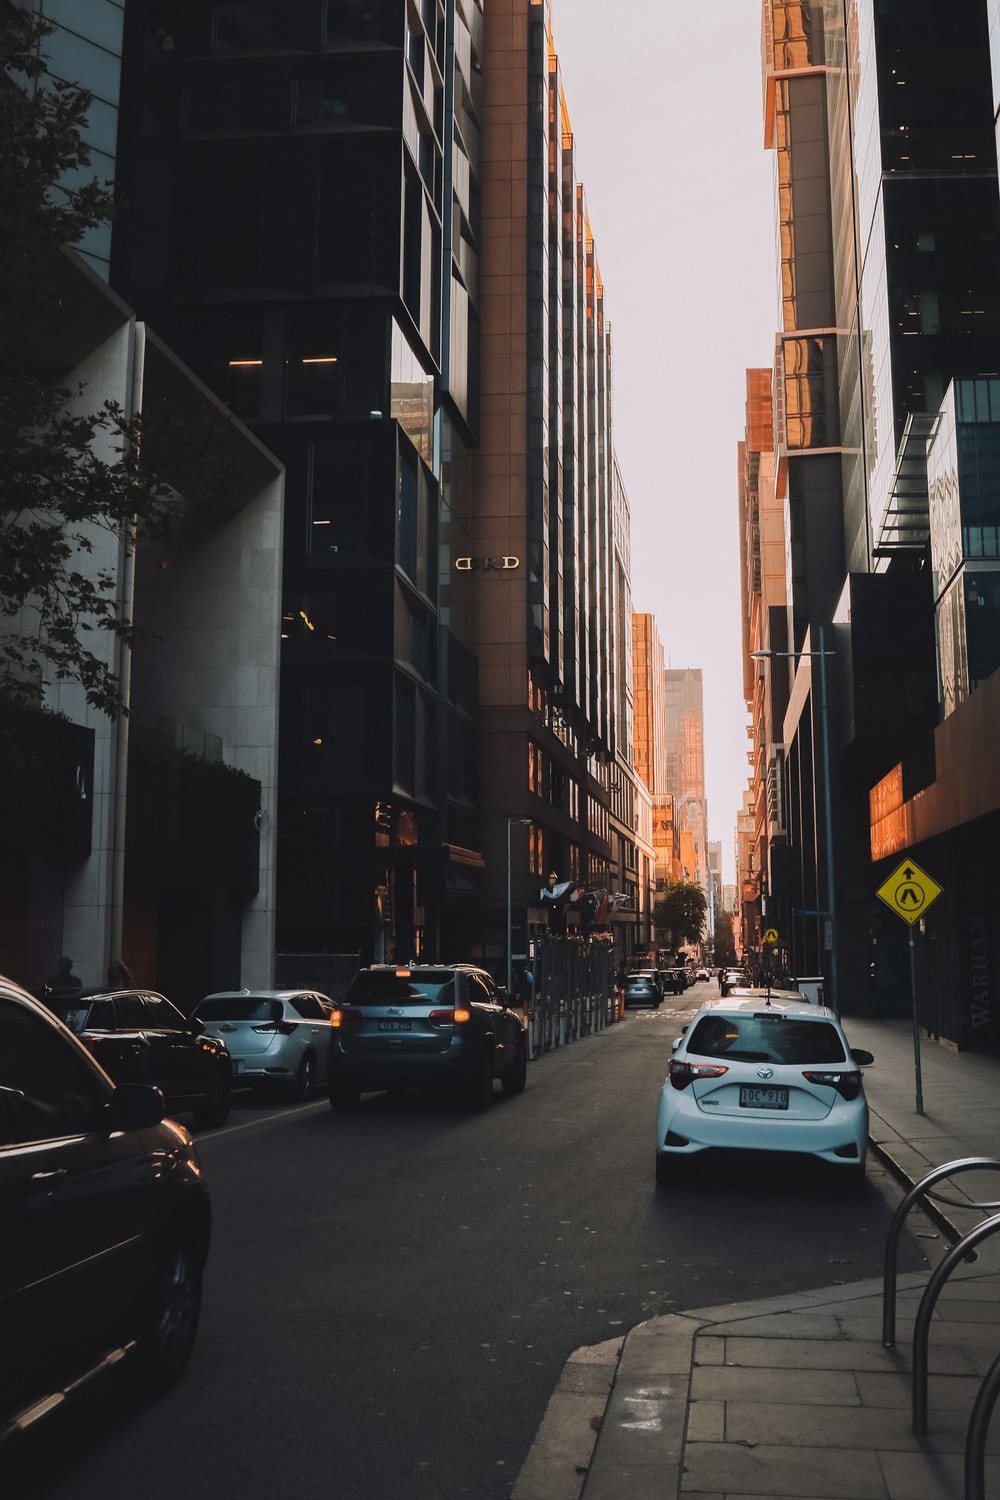 cars parked on side of the road in between high rise buildings during daytime